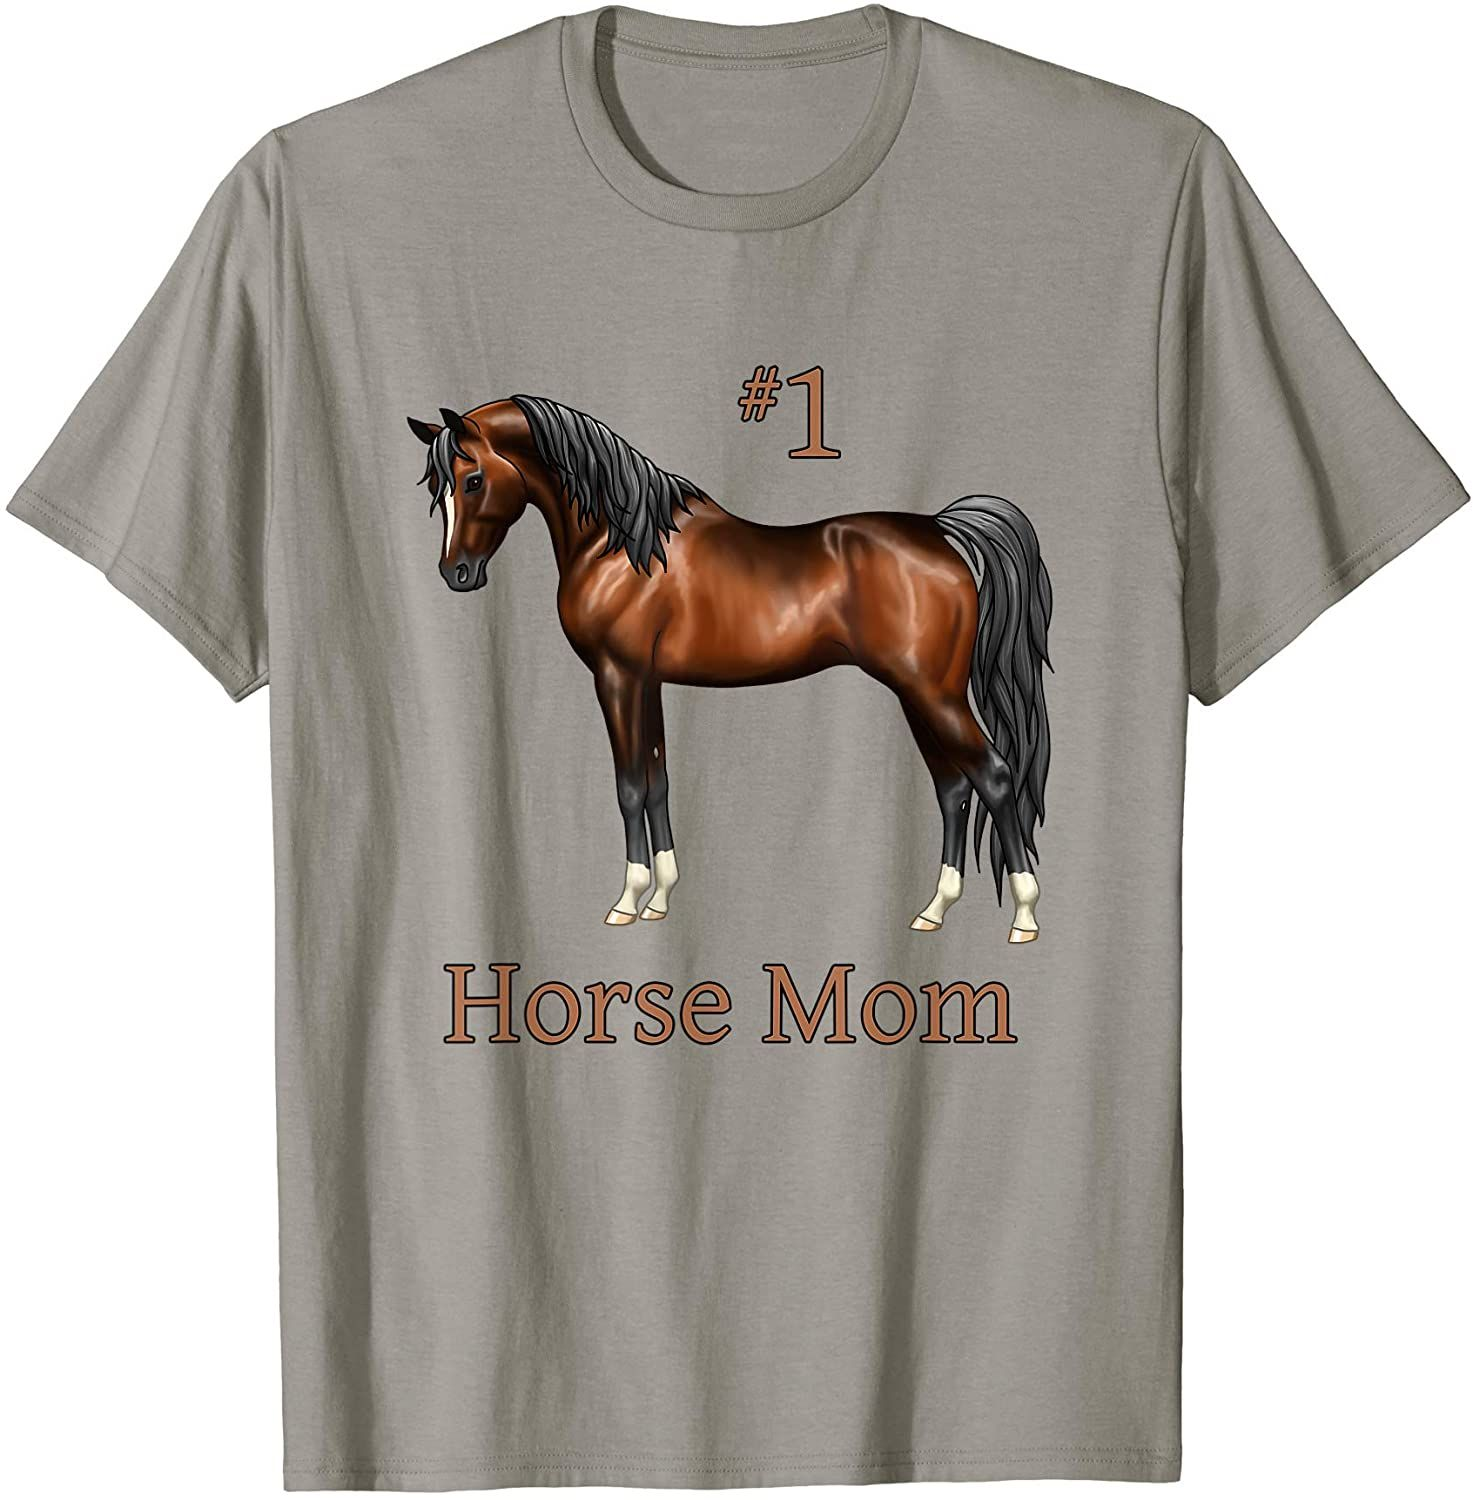 Horse T-shirt My Horse Calls Me Tee Shirt Humor Woman Cotton Organic for Horse Enthusiasts